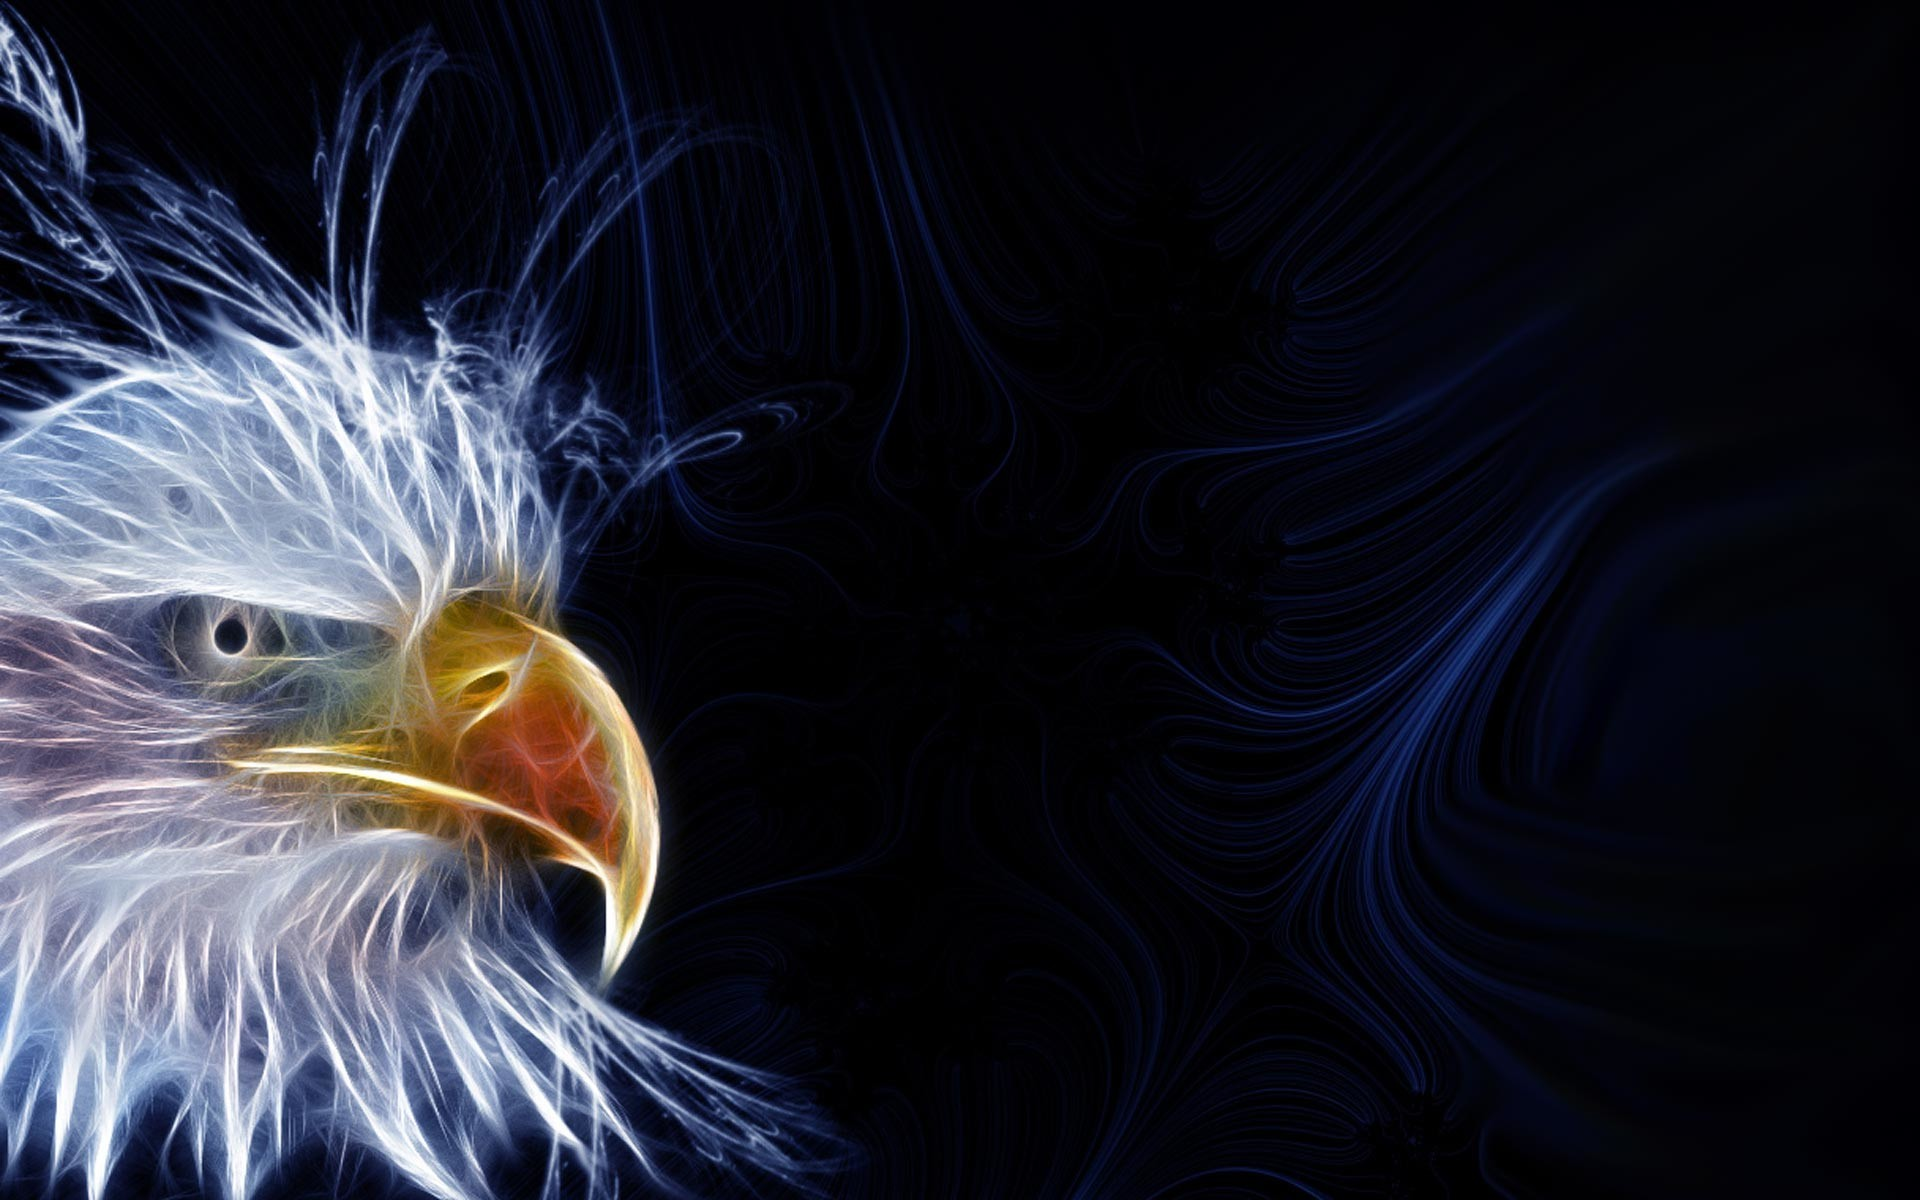 1920x1200 Bald Eagle HD Wallpapers THIS Wallpaper | HD Wallpapers | Pinterest .